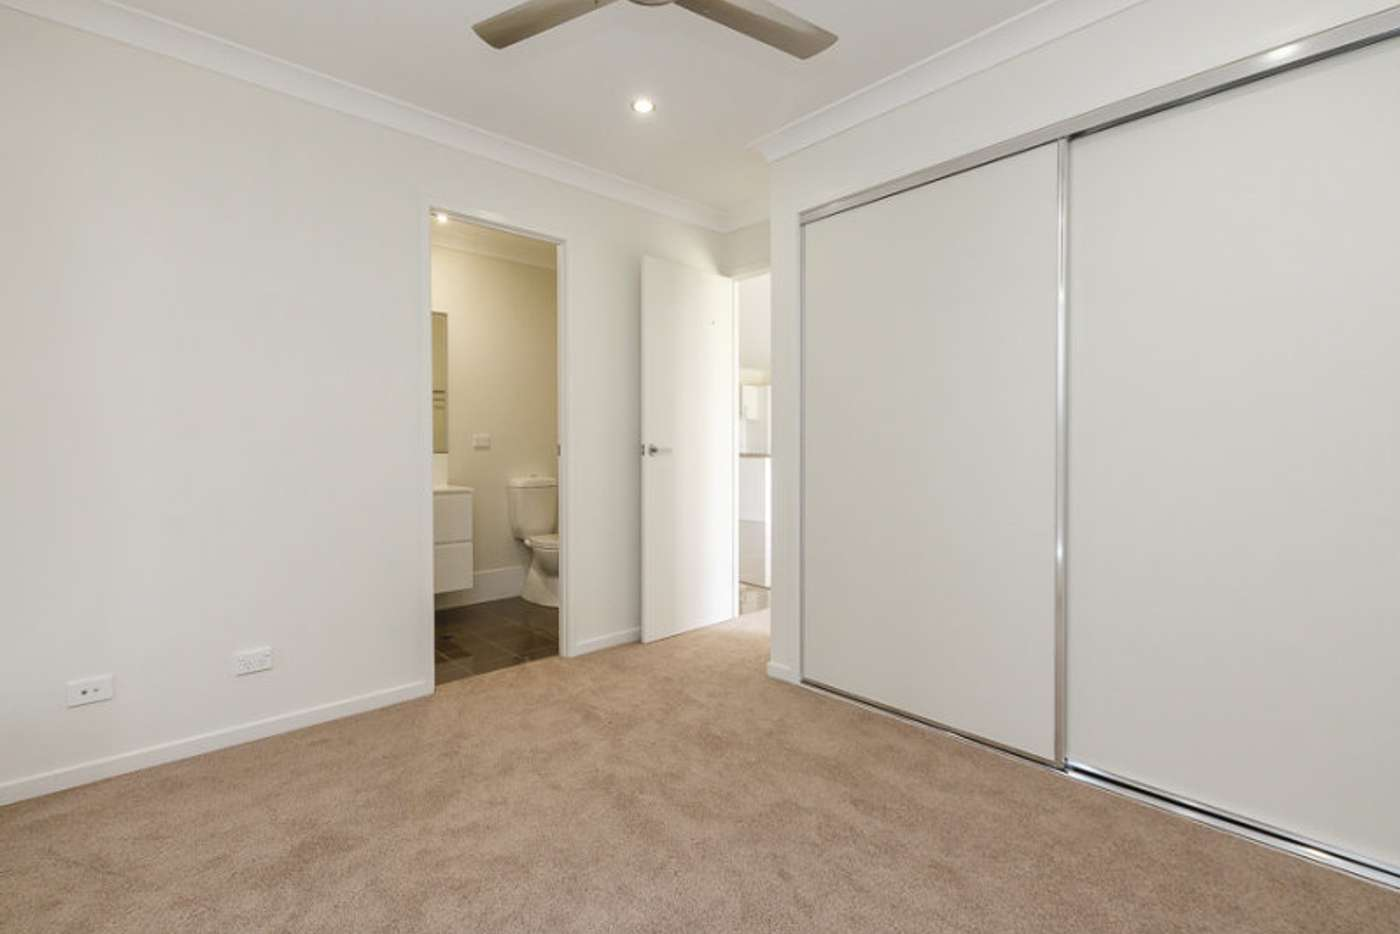 Sixth view of Homely house listing, 1 Massey Street, Yarrabilba QLD 4207